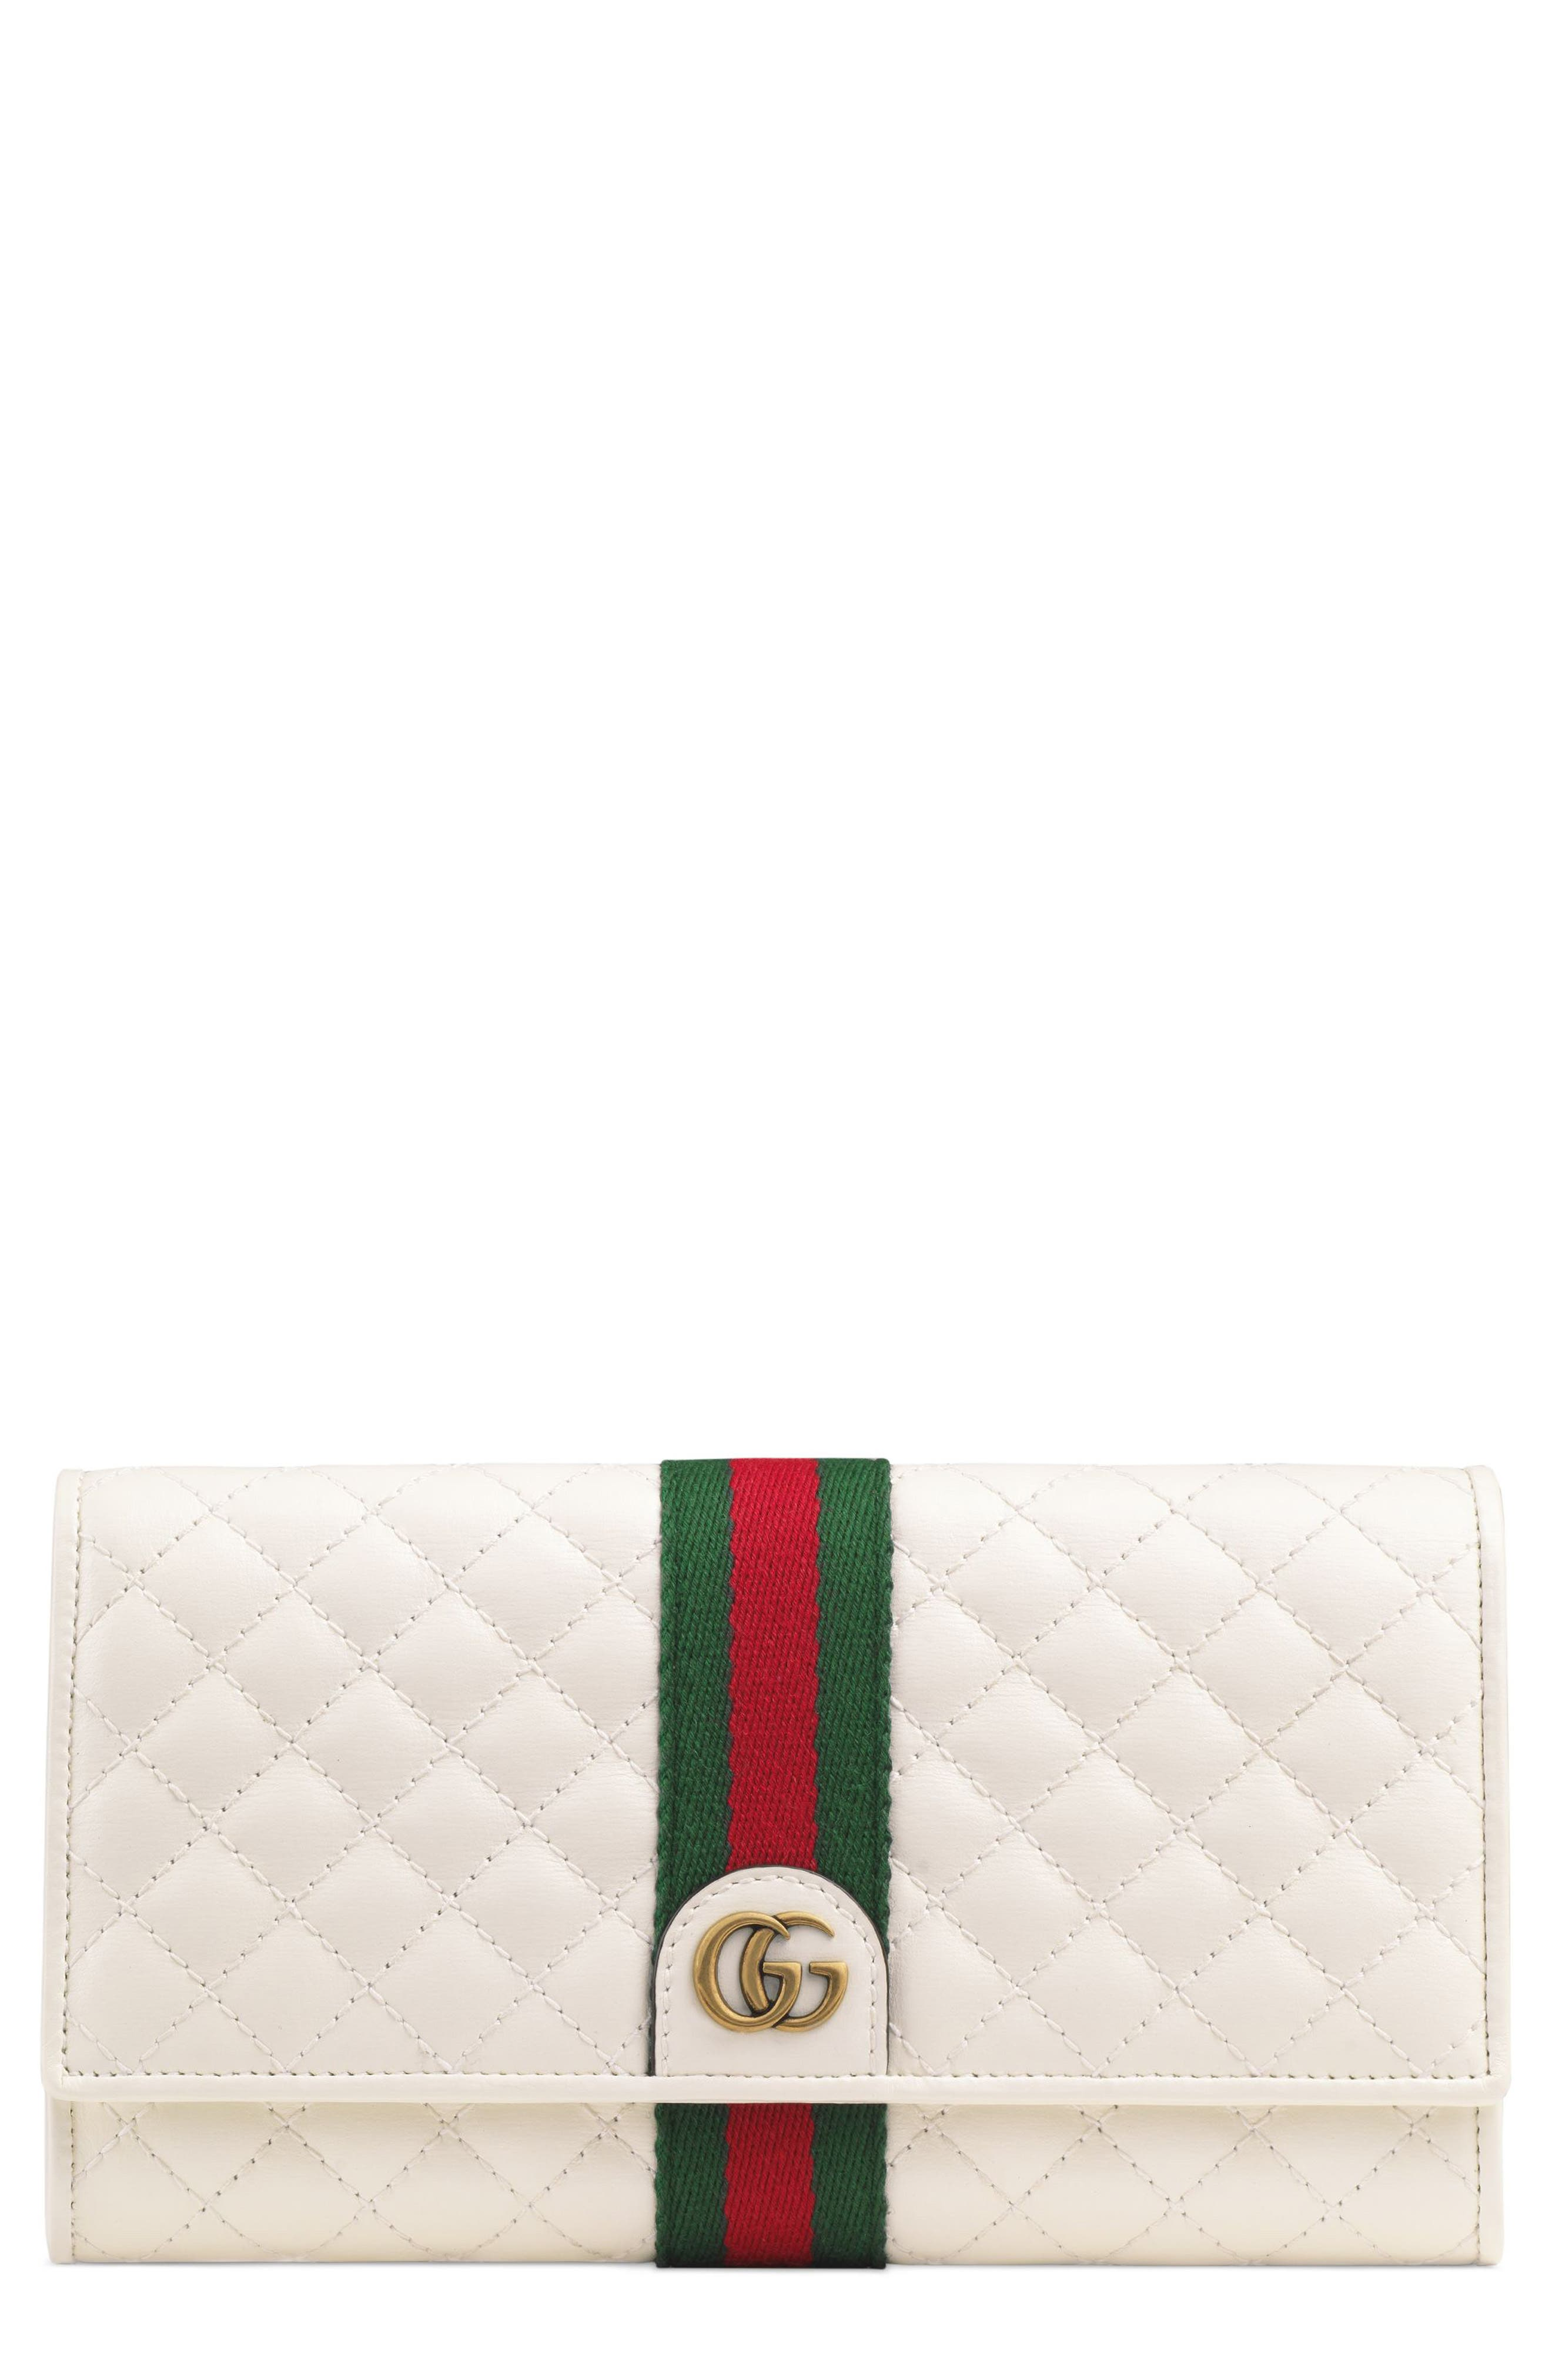 Quilted Leather Continental Wallet,                             Main thumbnail 1, color,                             OFF WHITE/ VERT/ RED